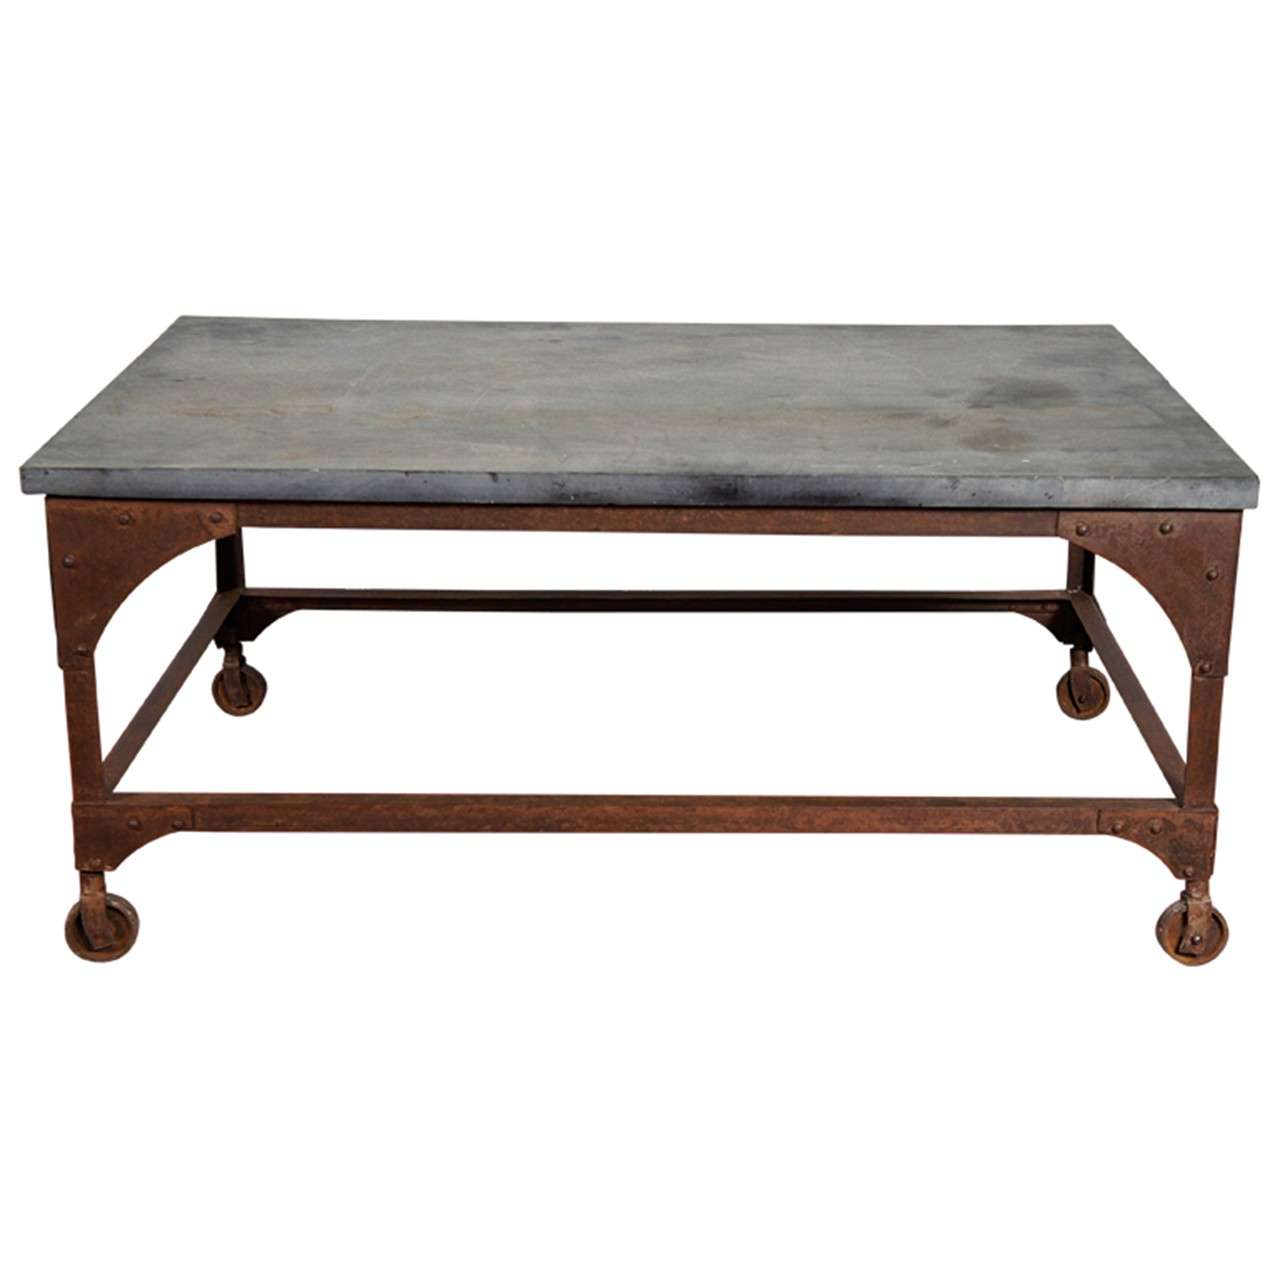 Industrial belgian blue stone and iron coffee table at 1stdibs for Coffee tables industrial